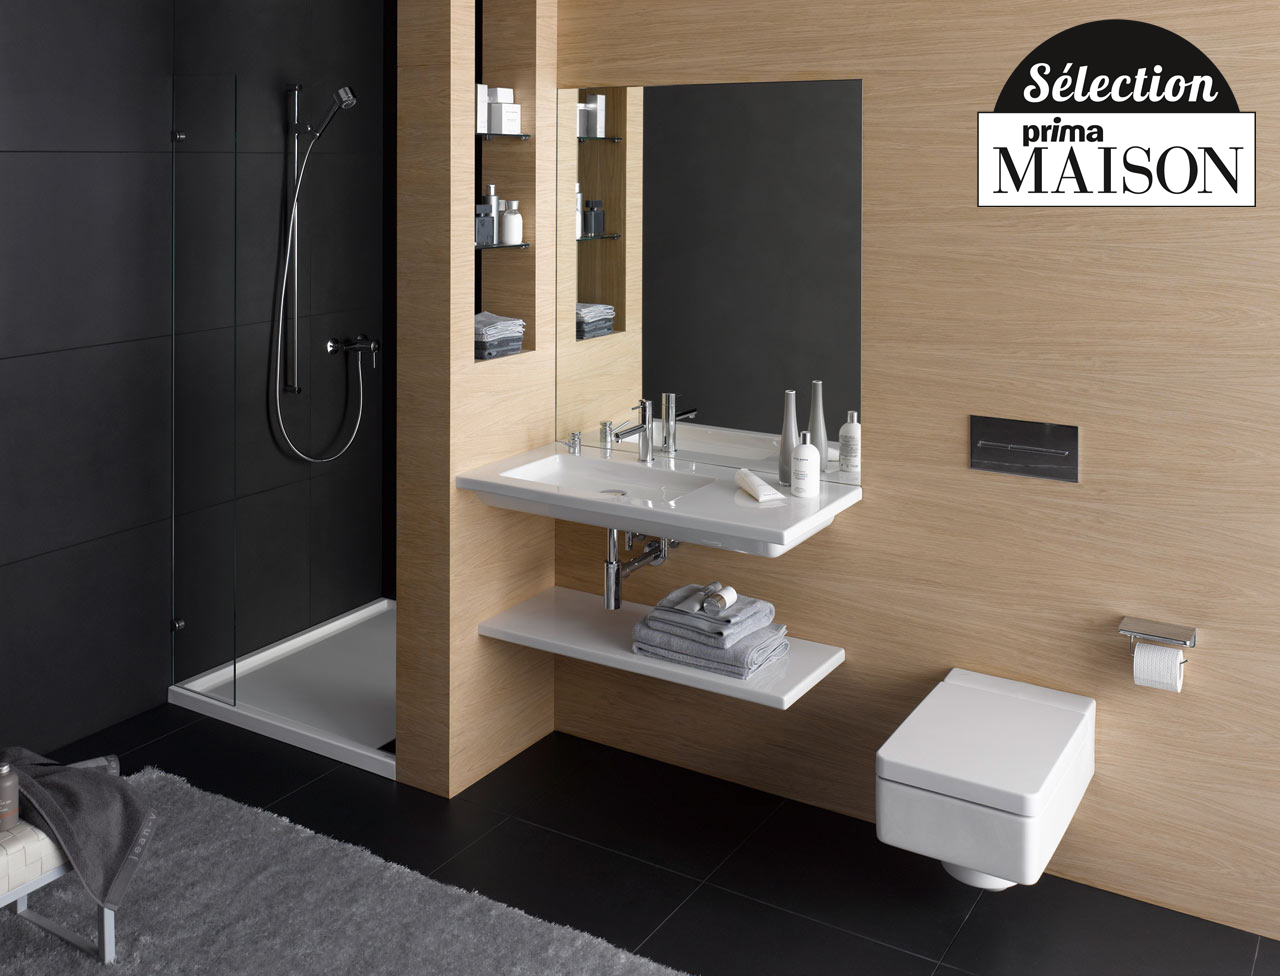 D coration salle de bain 2016 exemples d 39 am nagements - Photo salle de bain design ...